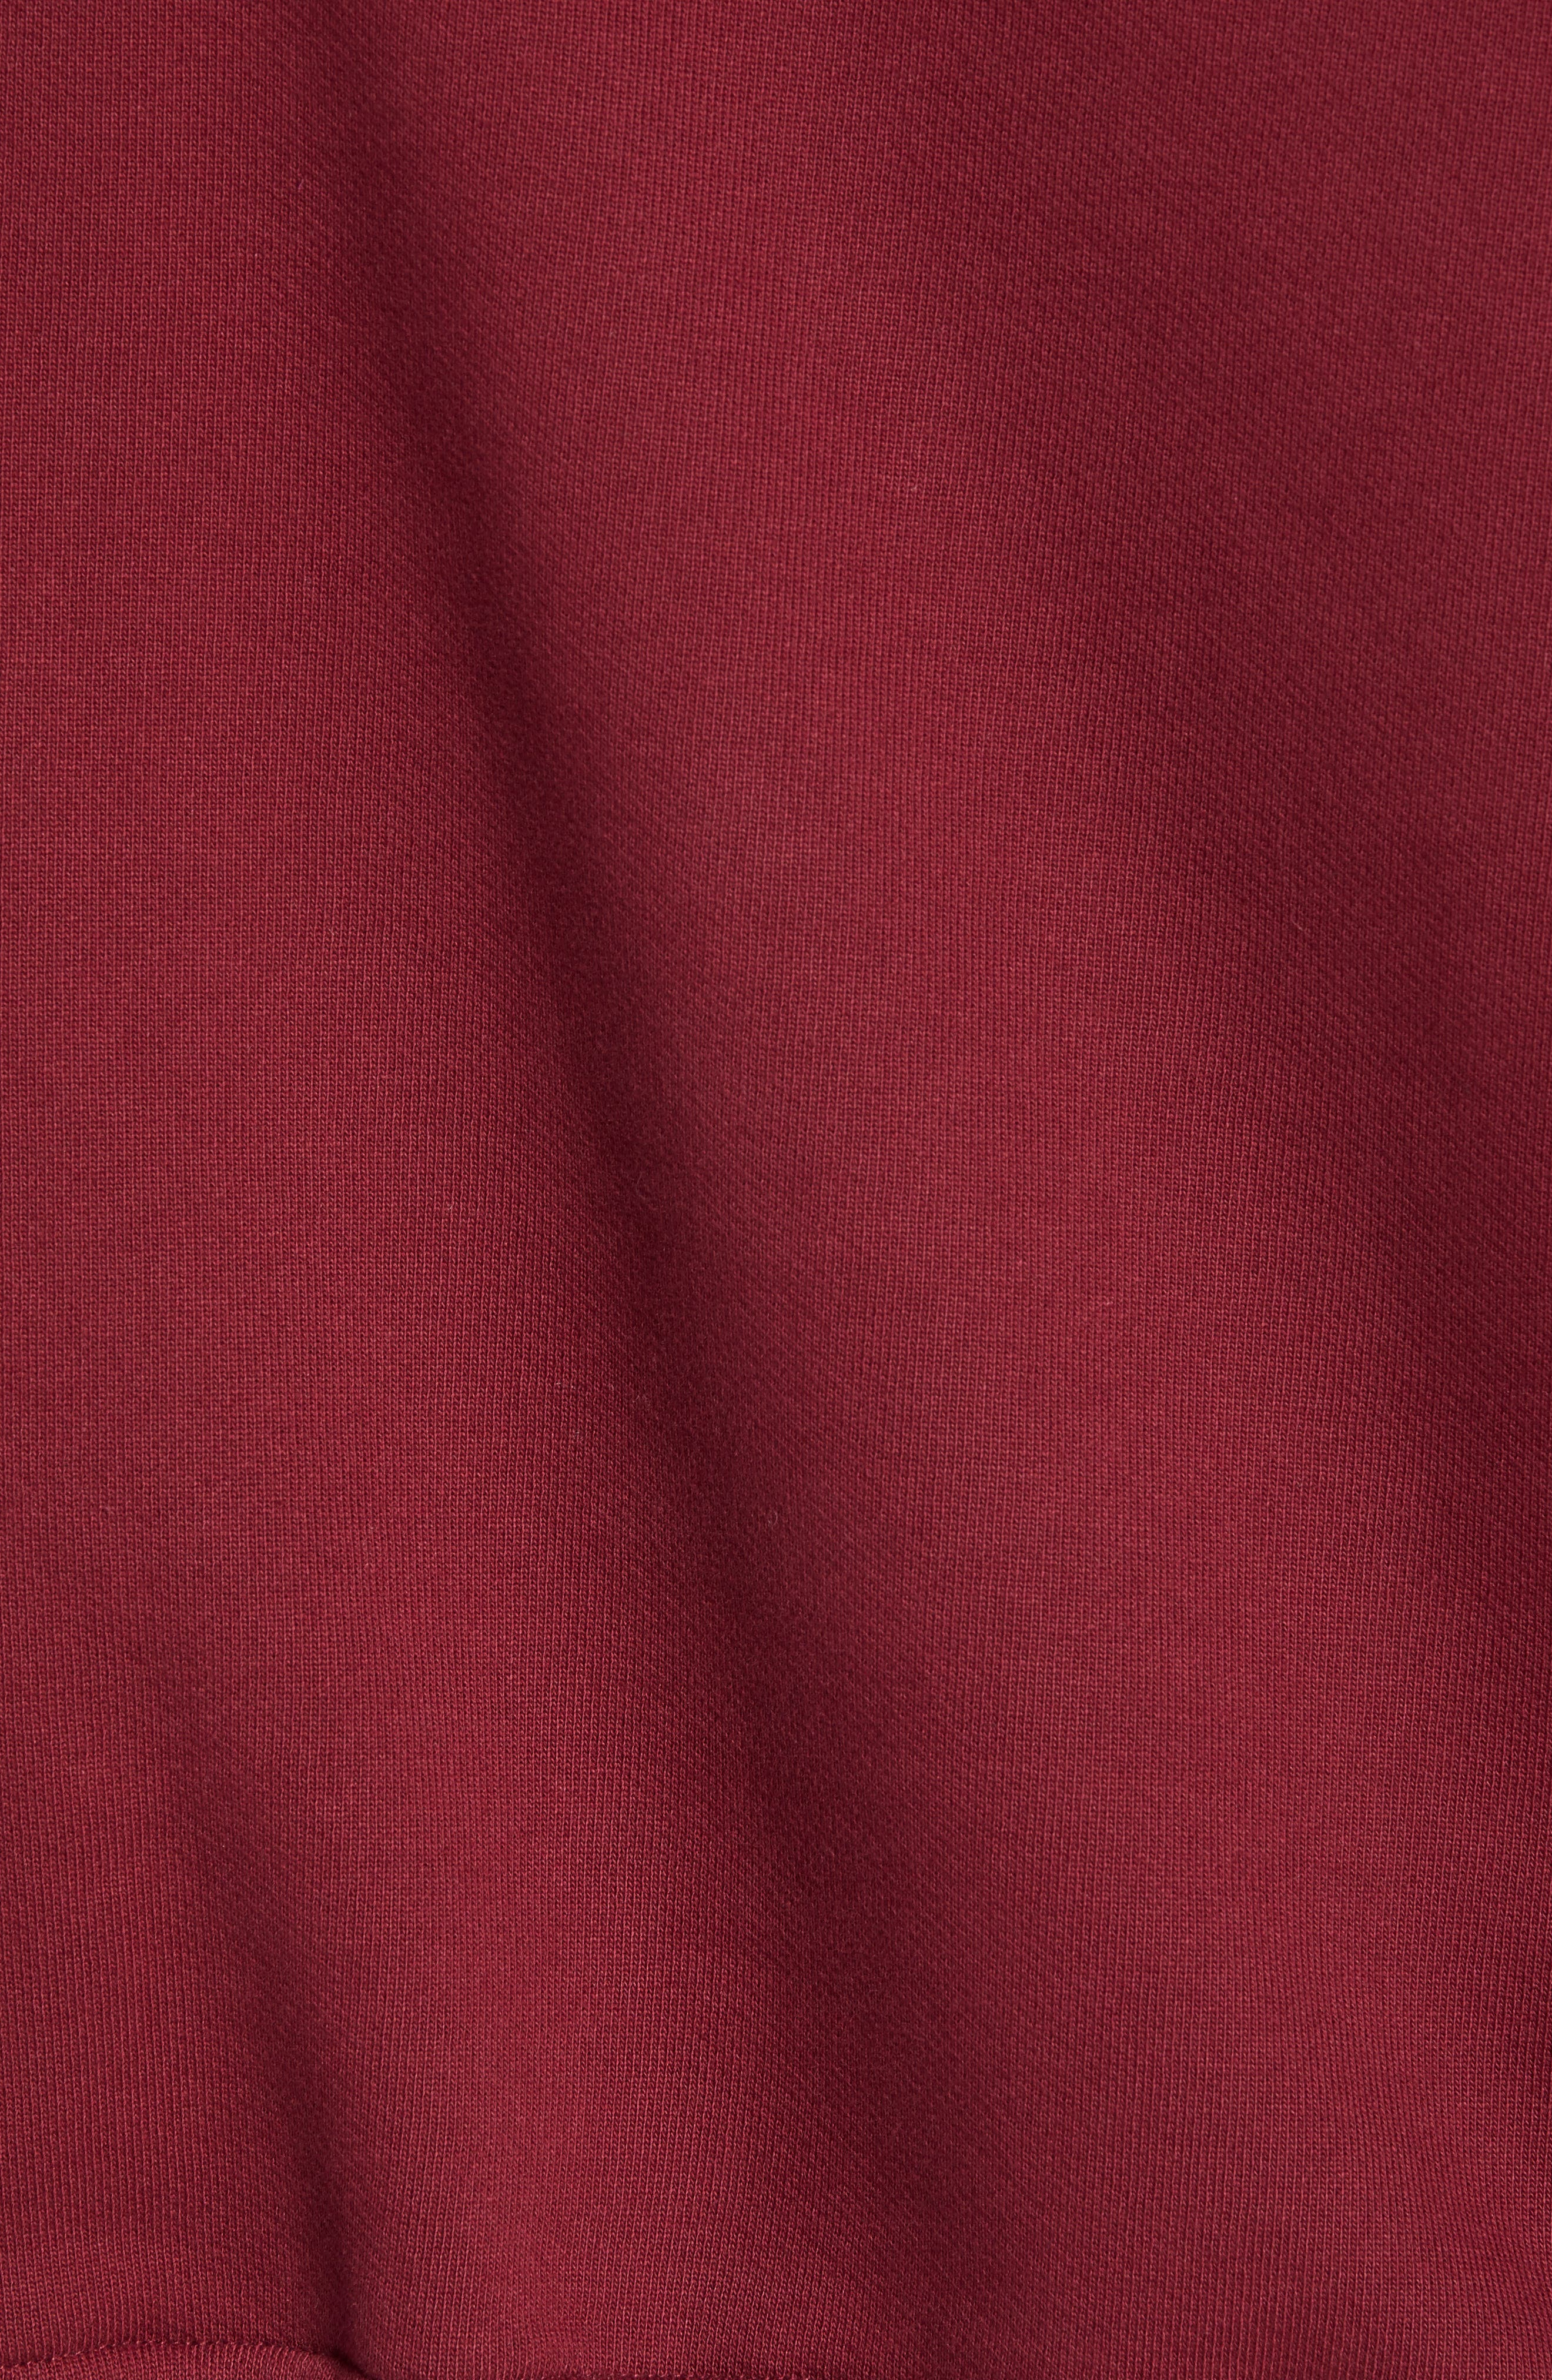 Embroidered Crest Logo Hoodie,                             Alternate thumbnail 5, color,                             CABERNET